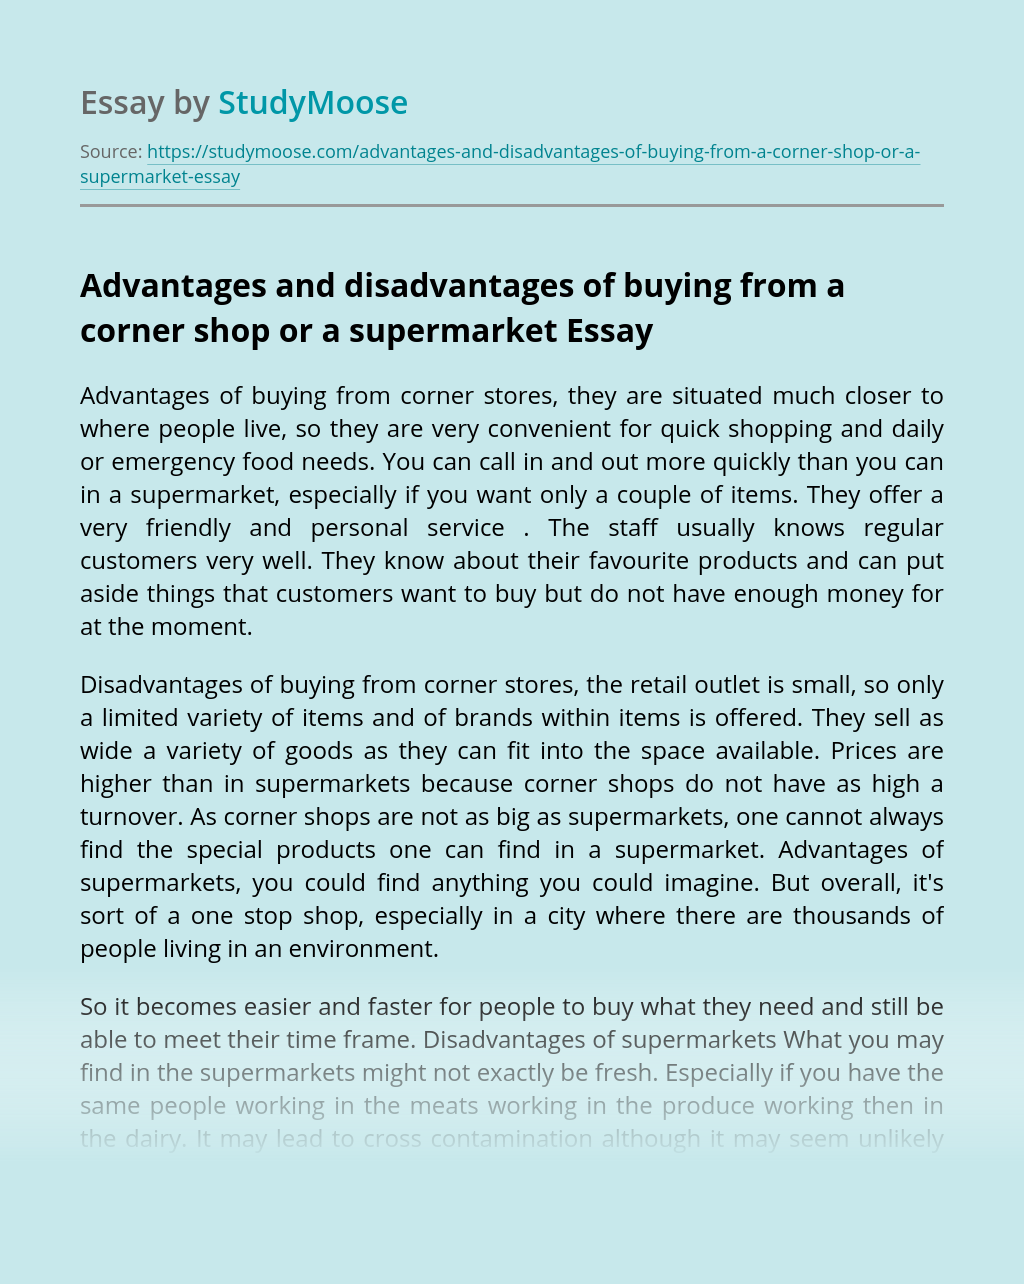 Advantages and disadvantages of buying from a corner shop or a supermarket